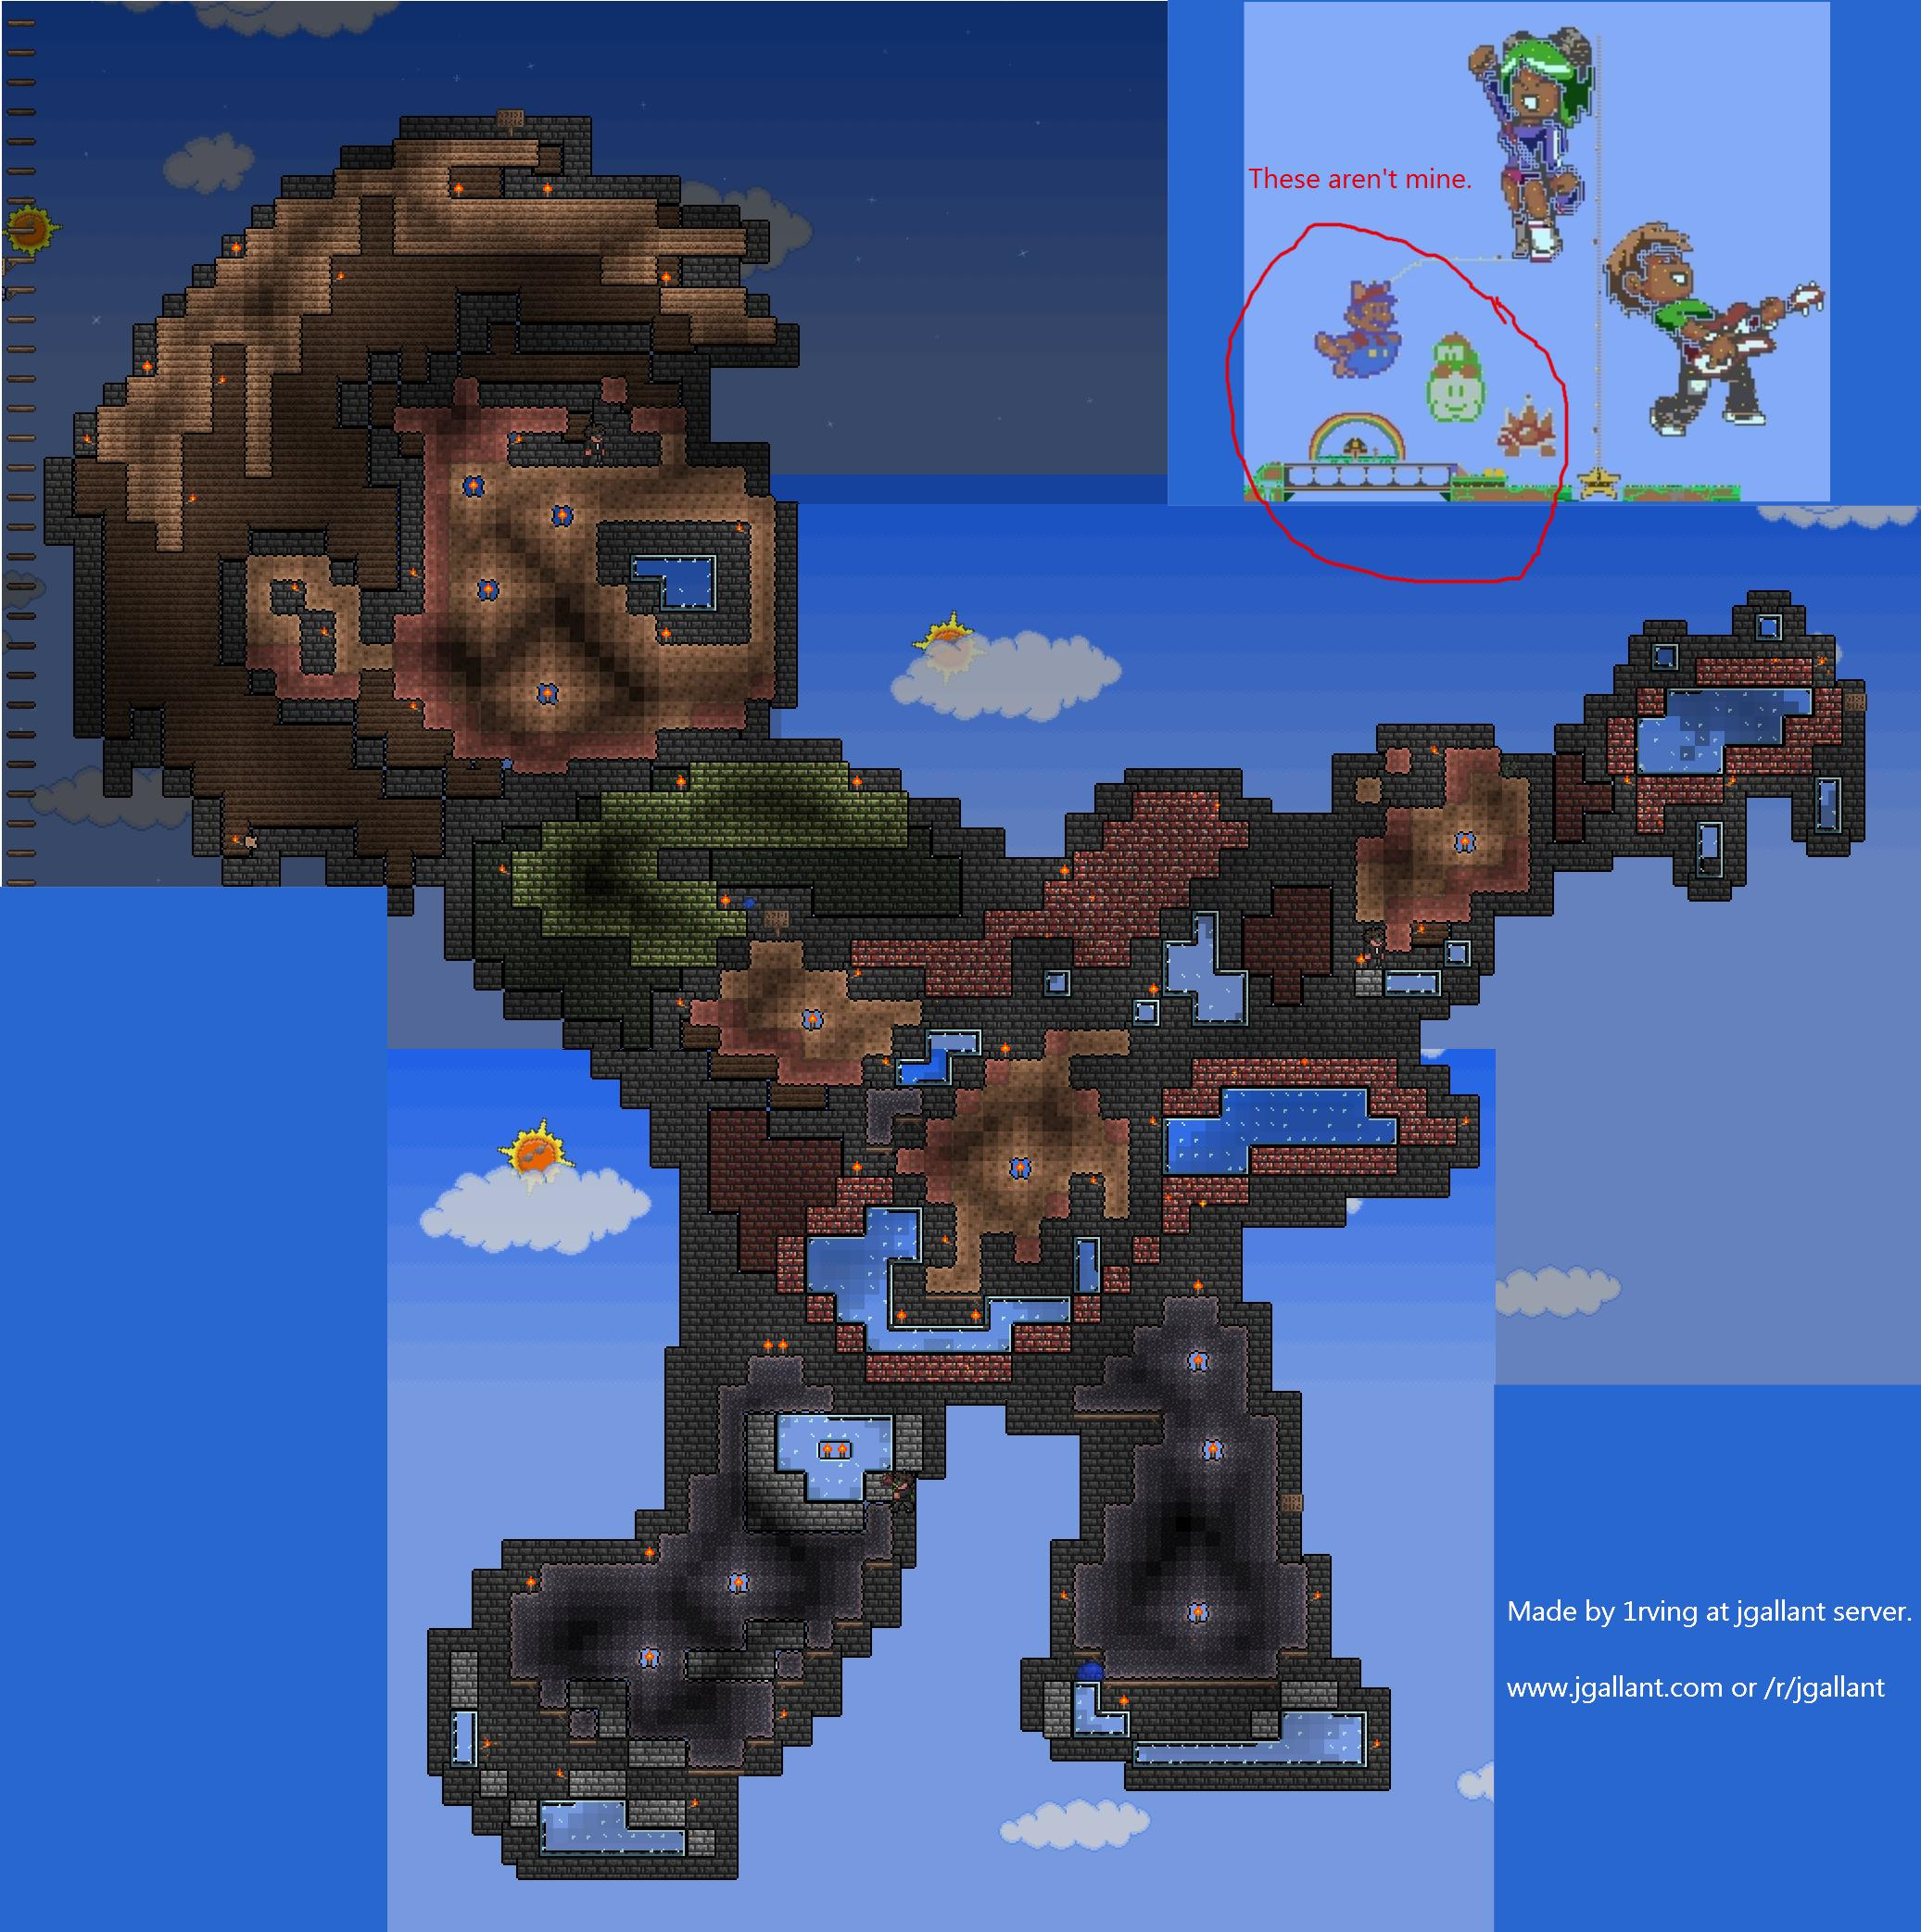 Scott Pilgrim Pixel Art By 1rving Terraria Know Your Meme